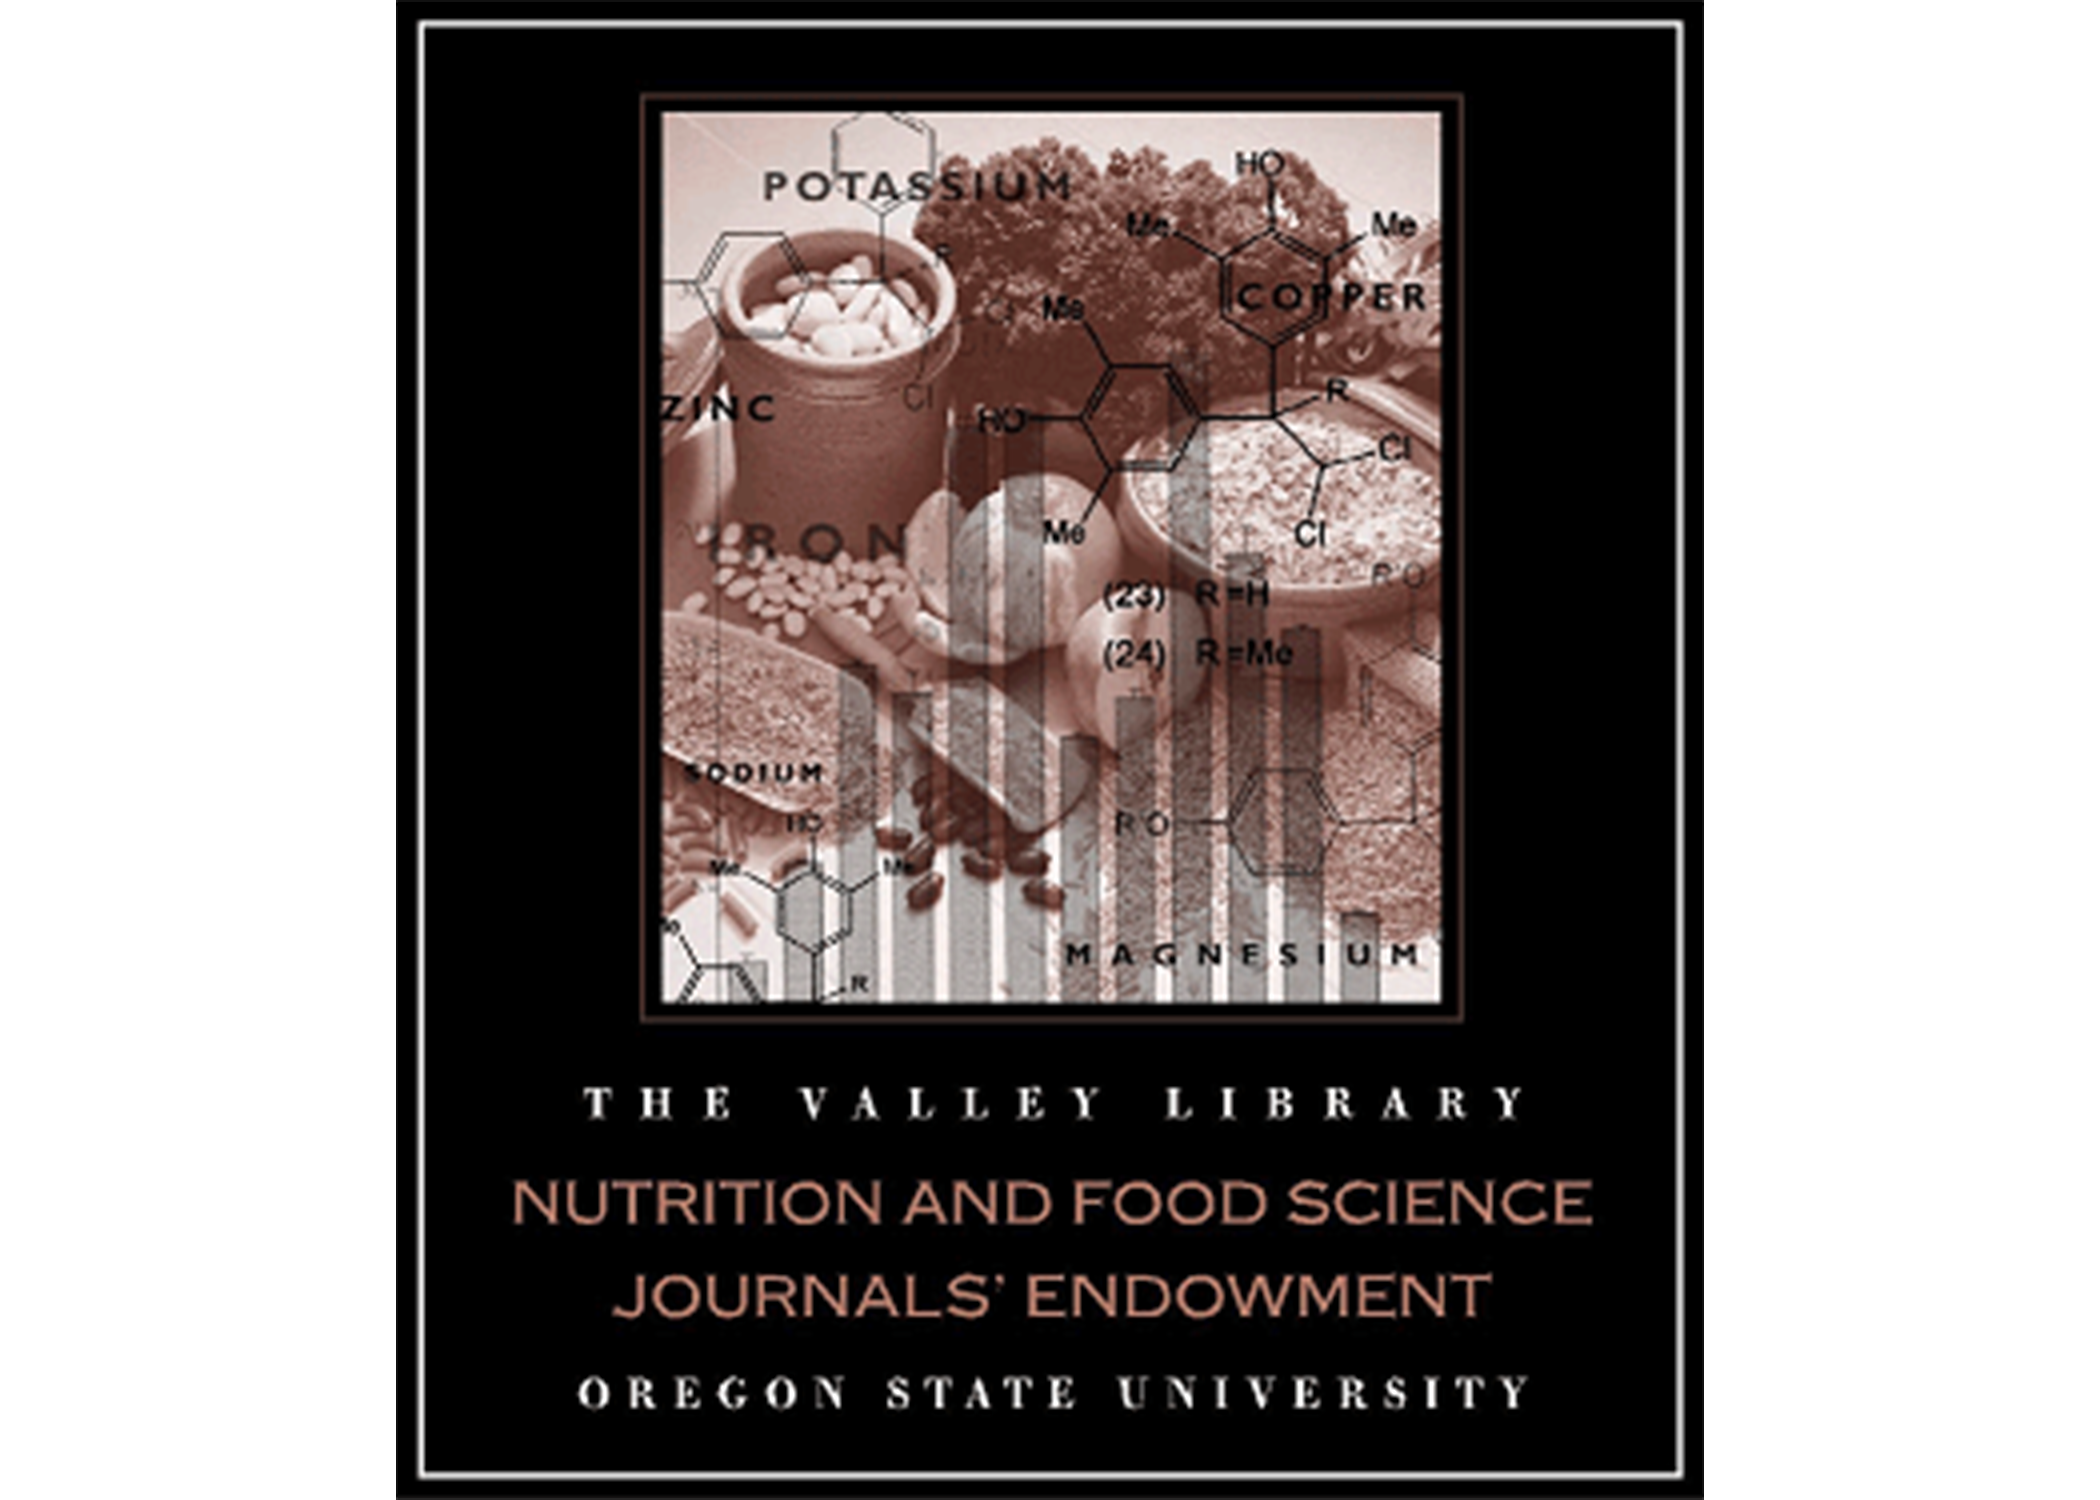 Nutrition and food science journals endowment